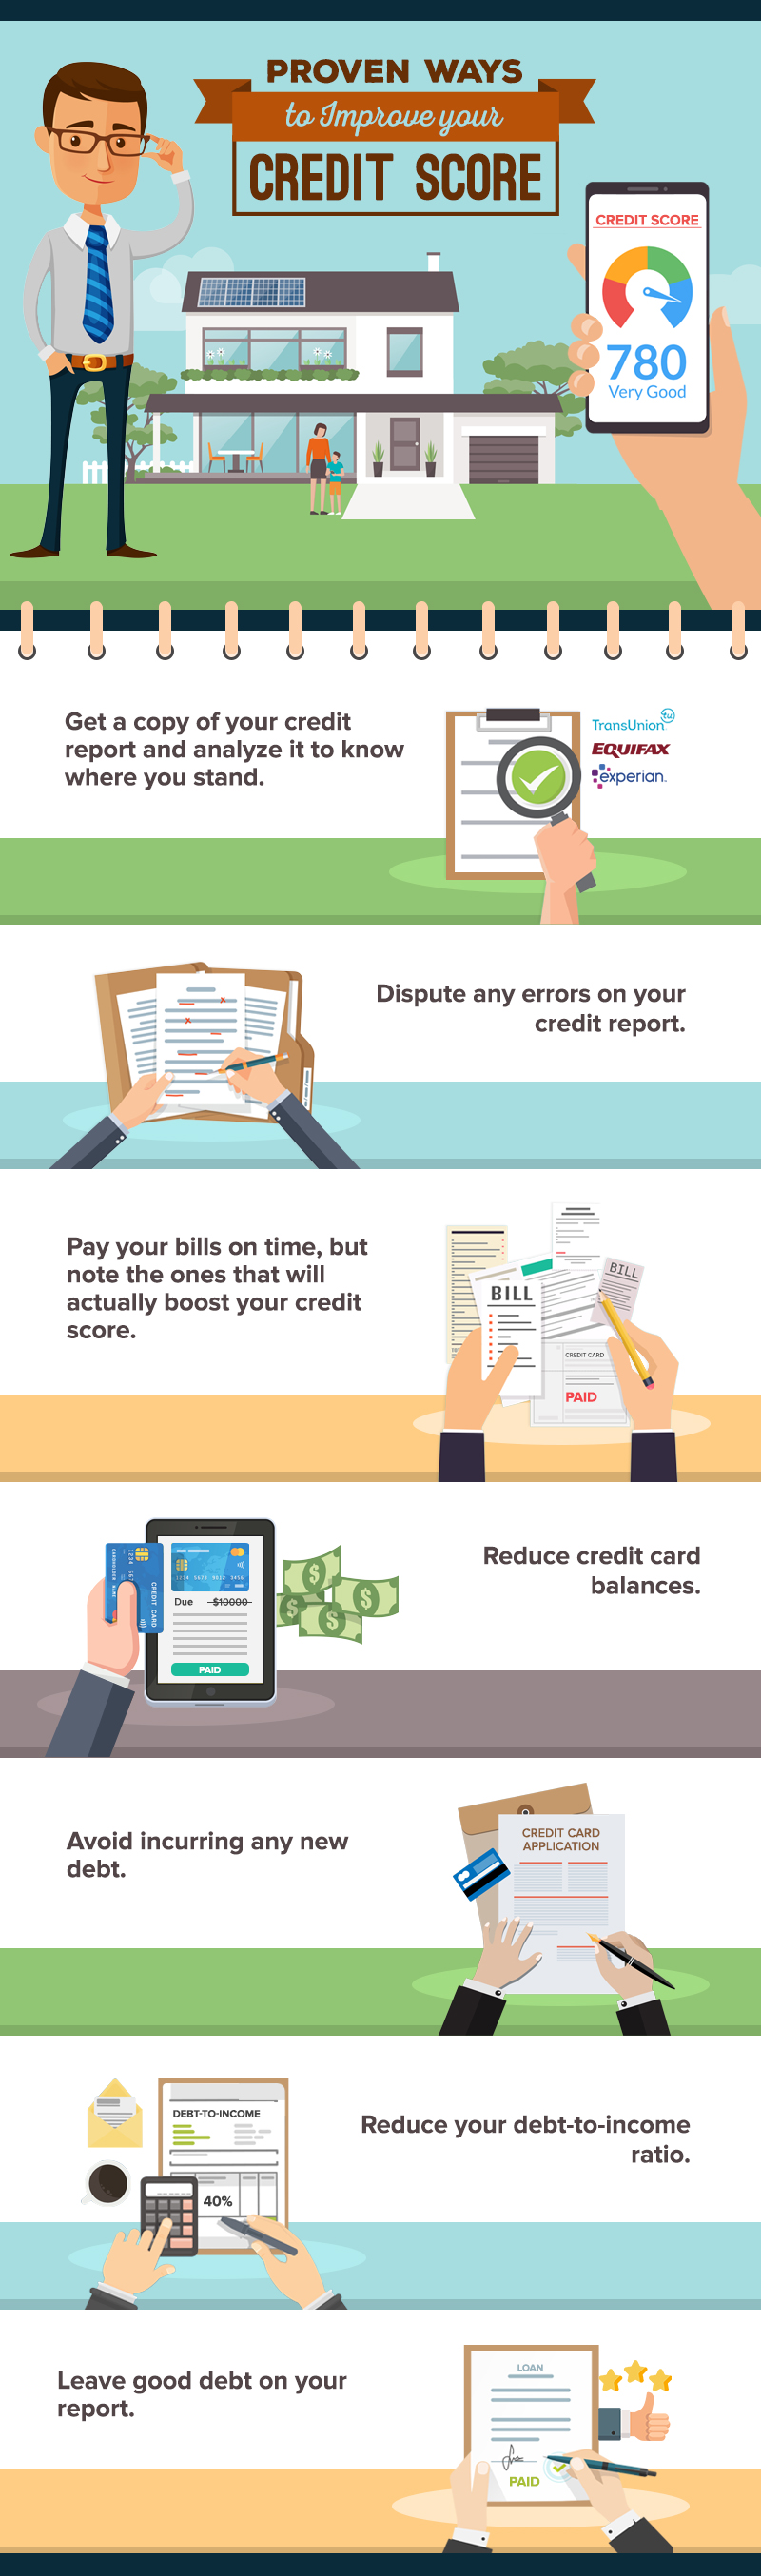 Proven Ways To Improve Your Credit Score (3).jpg